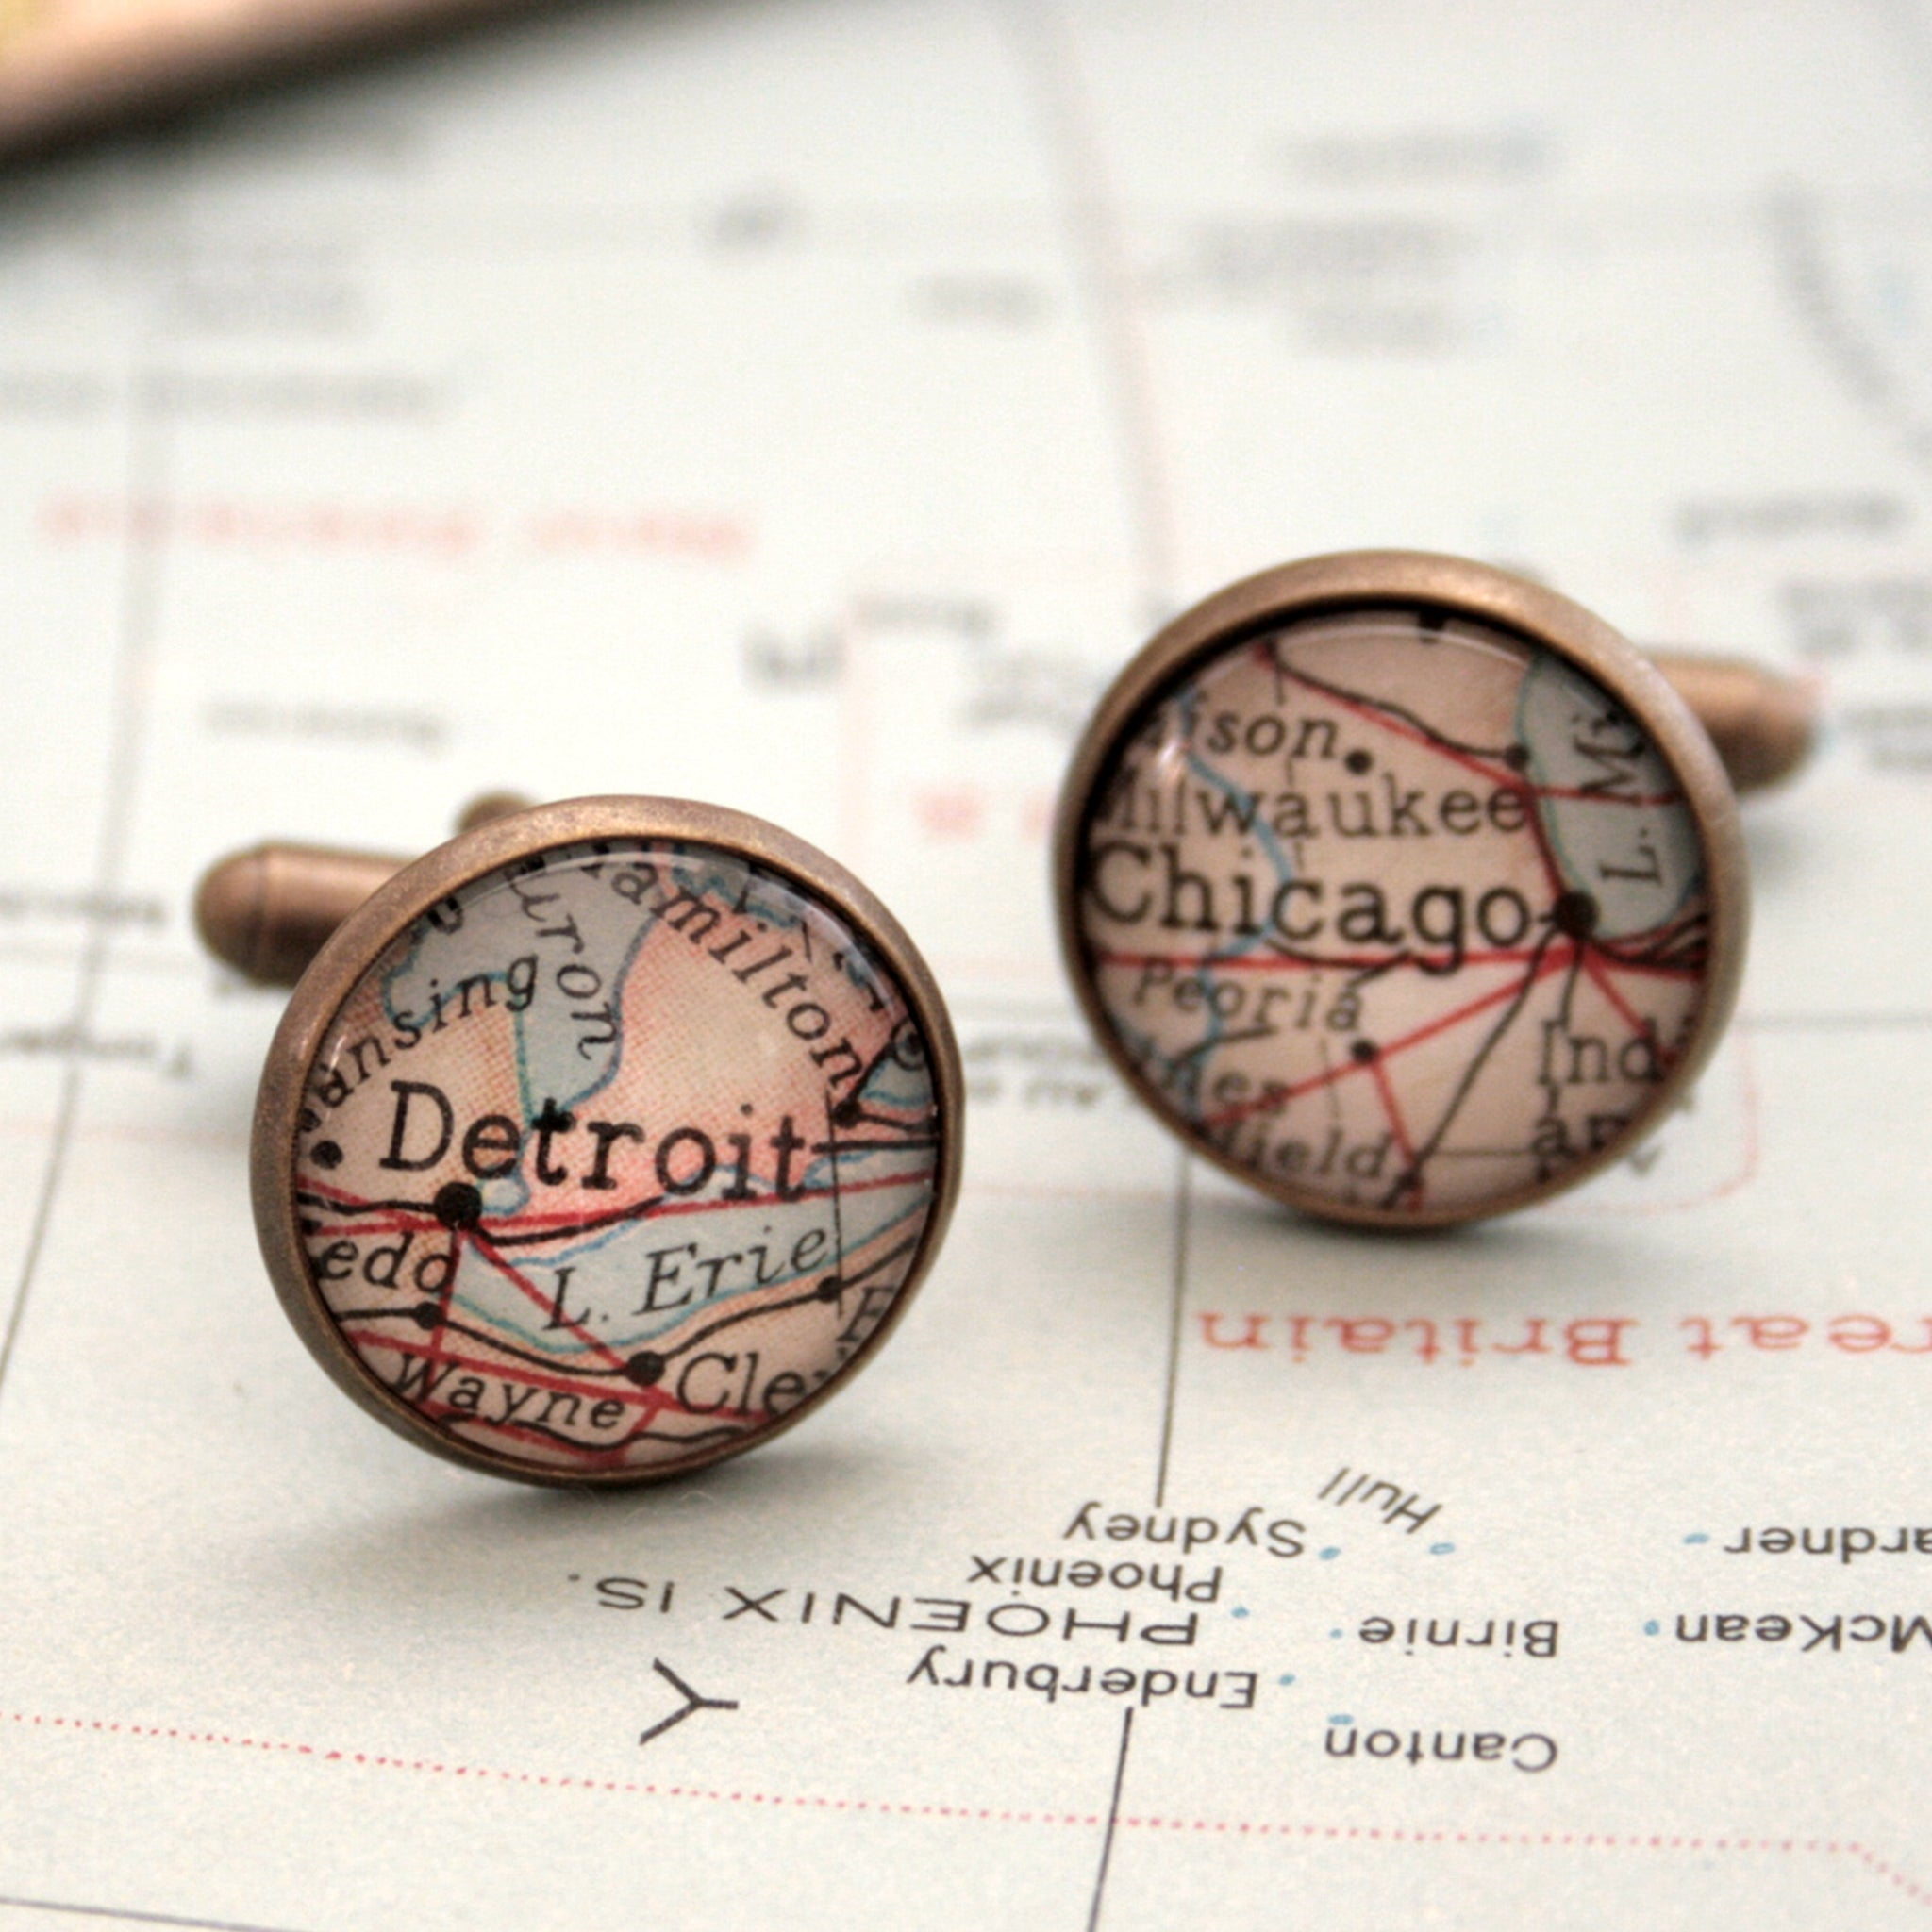 Personalised map cufflinks in antique bronze color featuring maps of Detroit and Chicago